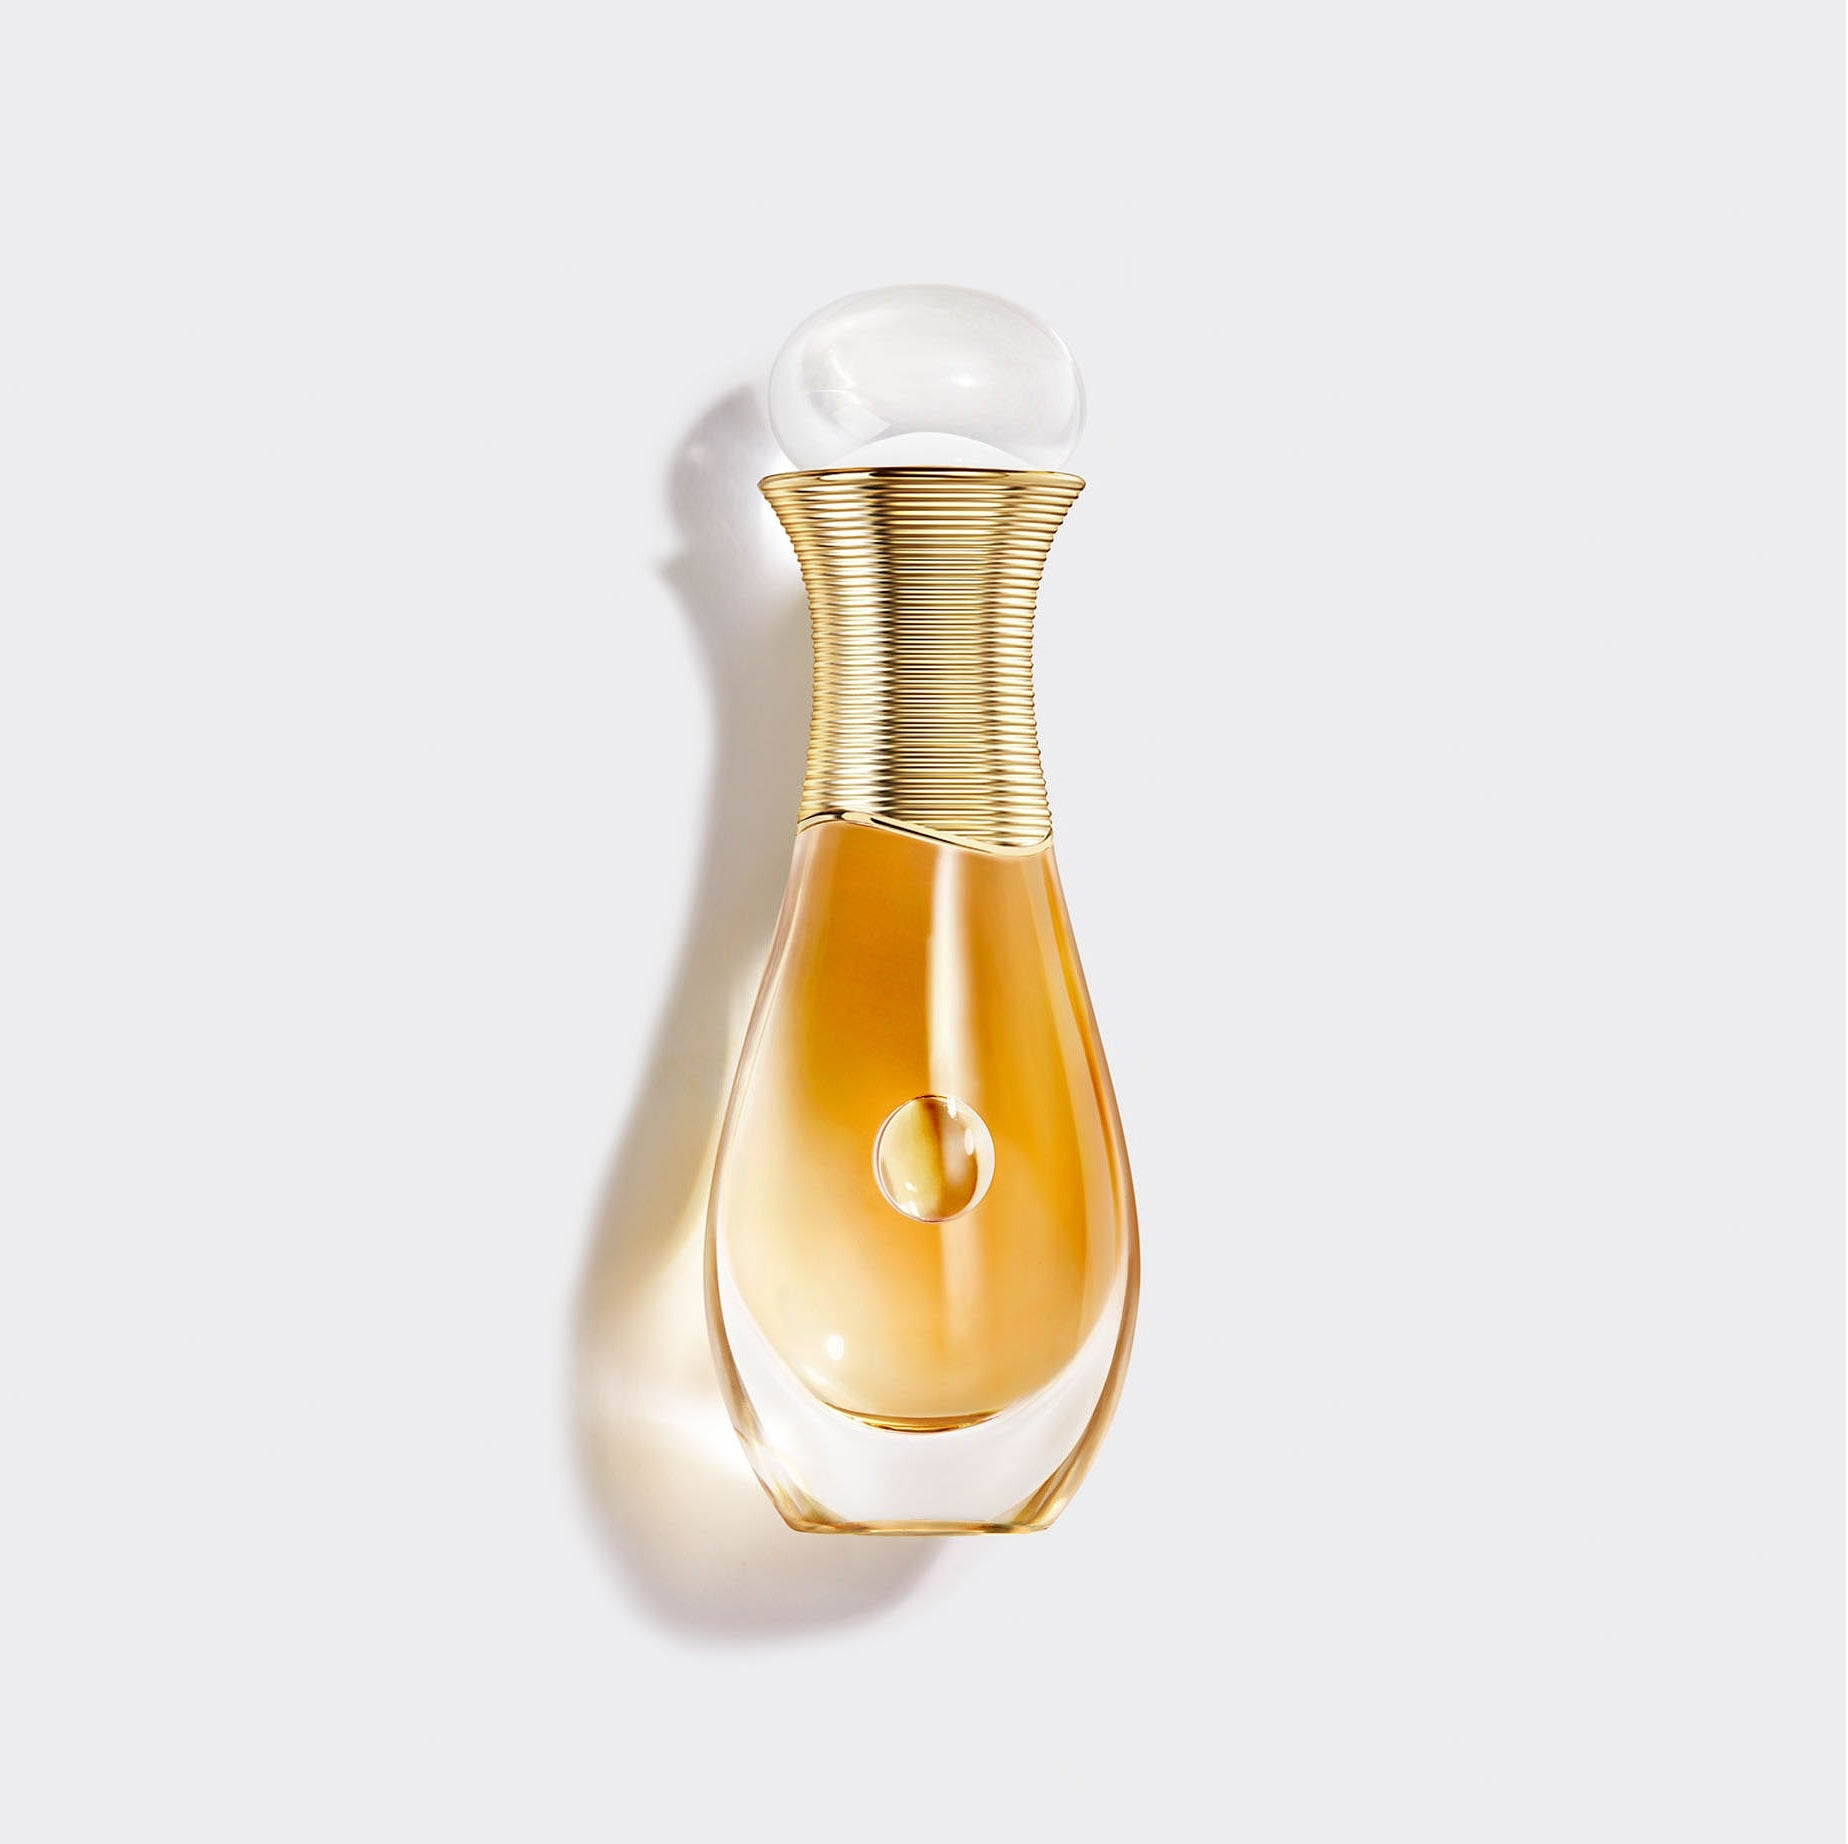 J'adore eau de parfum infinissime Roller-Pearl | A travel-friendly bottle for an infinitely sensual perfuming gesture